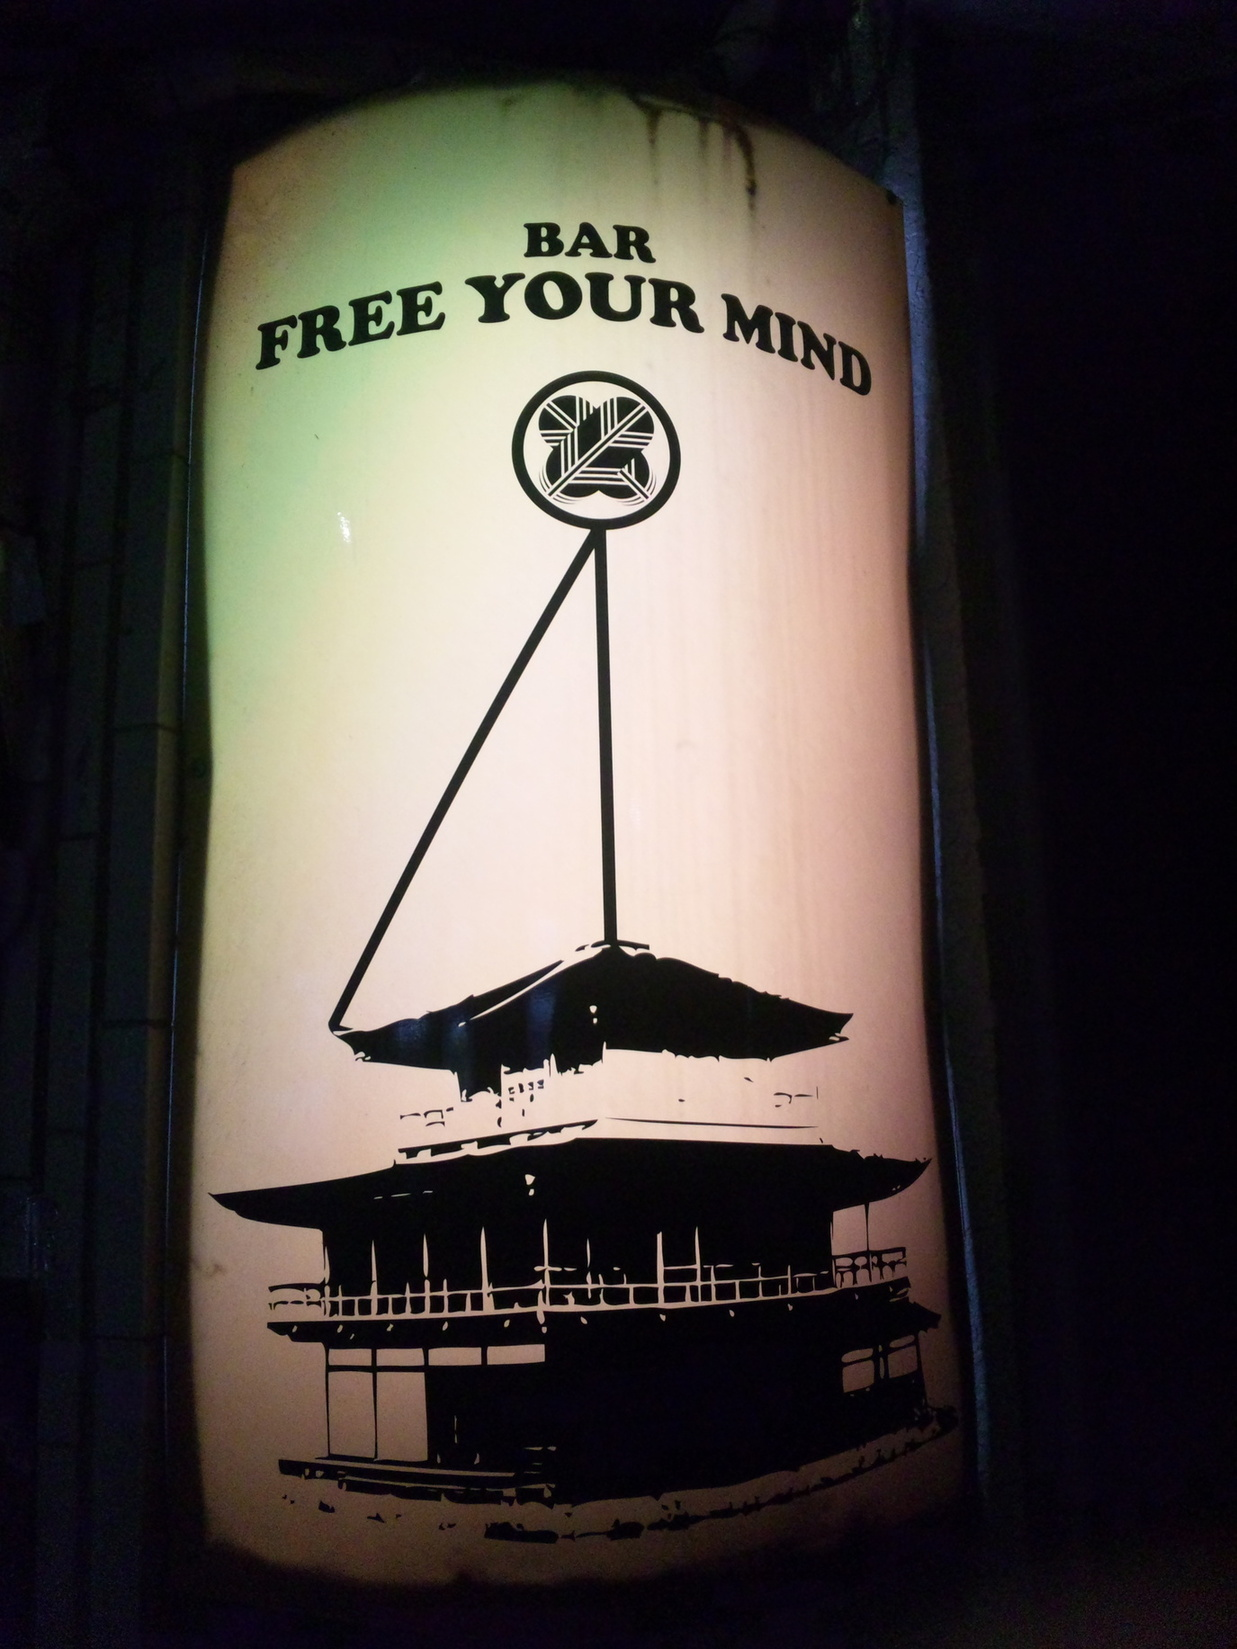 BAR FREE YOUR MIND